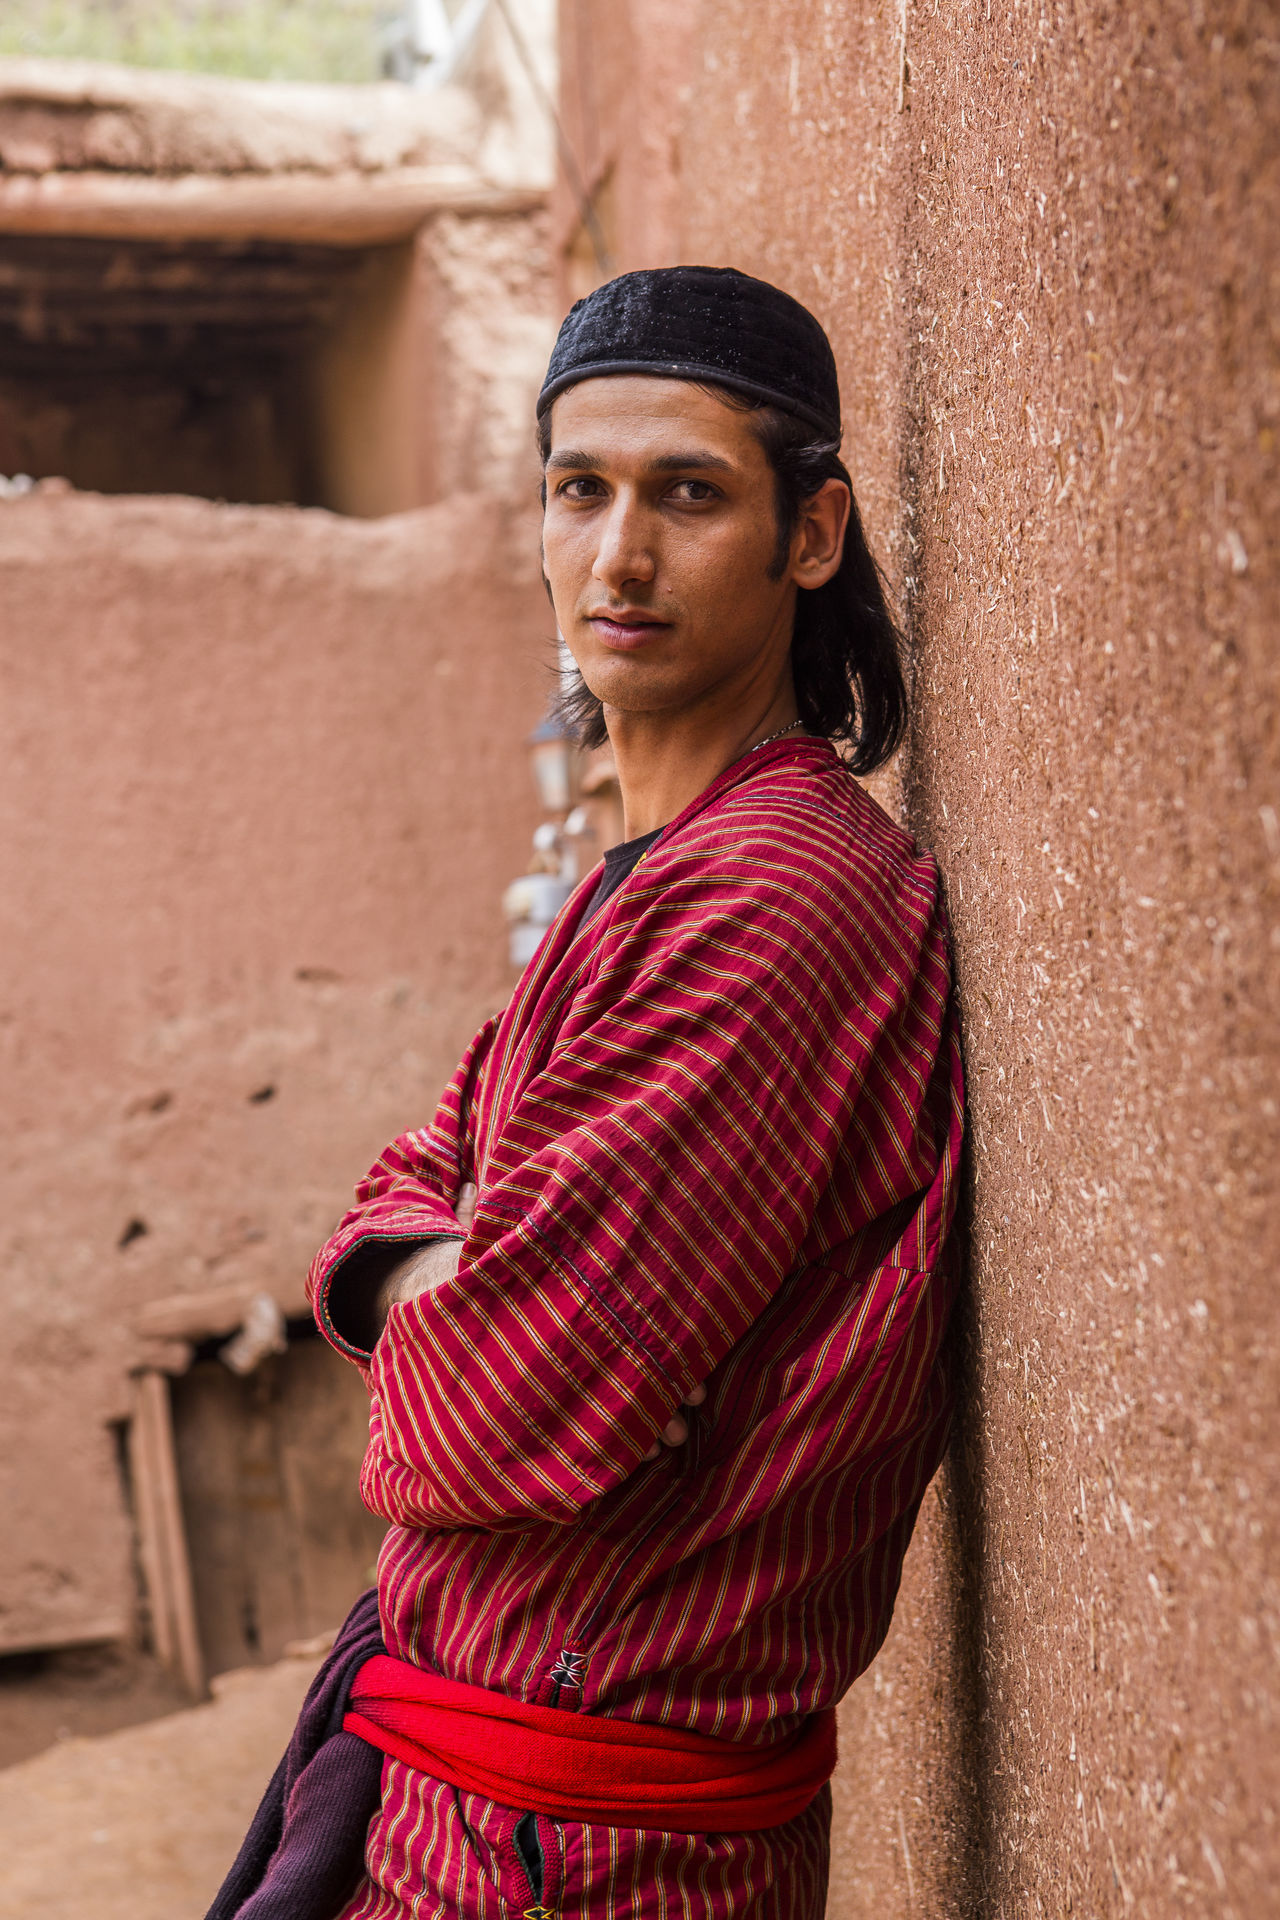 He is Qasem, he play Drums, and renting dress in Abyaneh for visitors or traveler. he was so fun person. Abyaneh Clothes Dress Iran Iranian Iranian People Lifestyles One Person Outdoors People Portrait Real People The Great Outdoors - 2017 EyeEm Awards The Photojournalist - 2017 EyeEm Awards The Portraitist - 2017 EyeEm Awards Traditional Clothing Traditional Costume BYOPaper! Live For The Story Place Of Heart